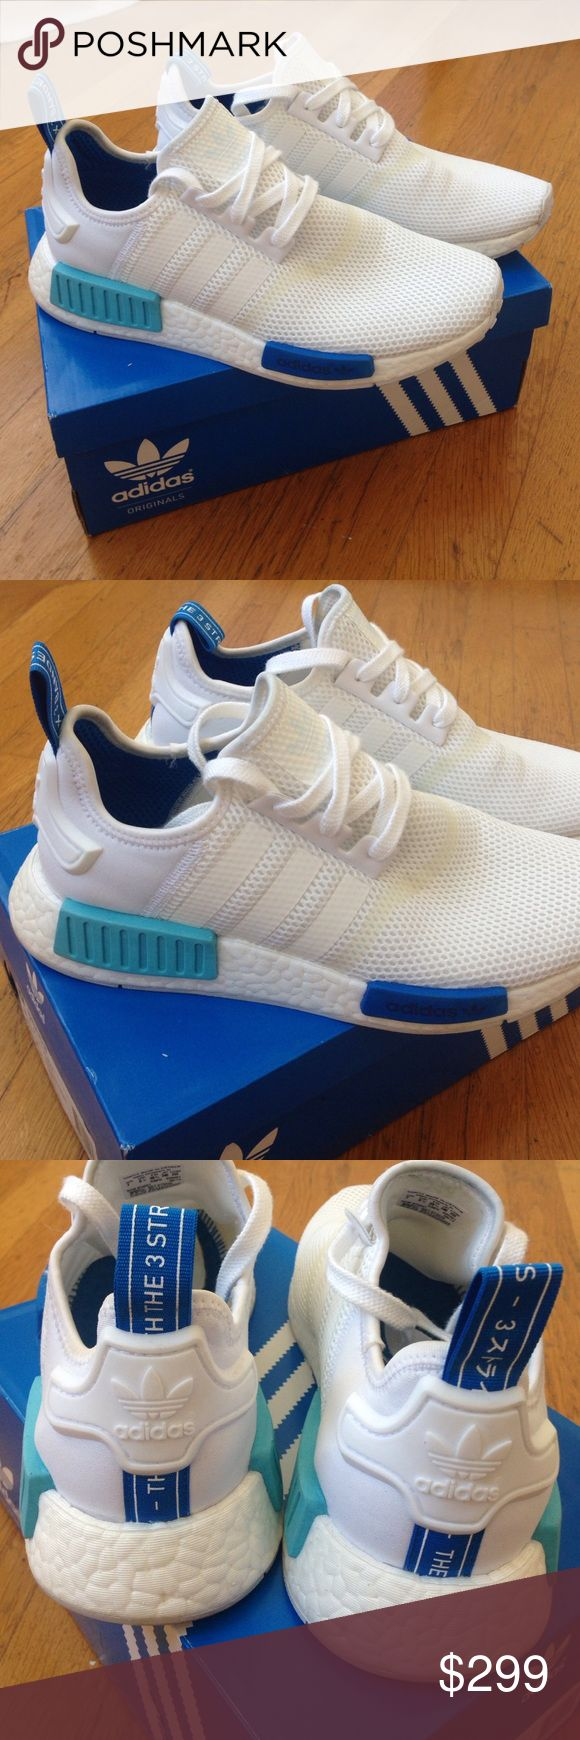 kmkast 1000+ ideas about All White Nmd on Pinterest